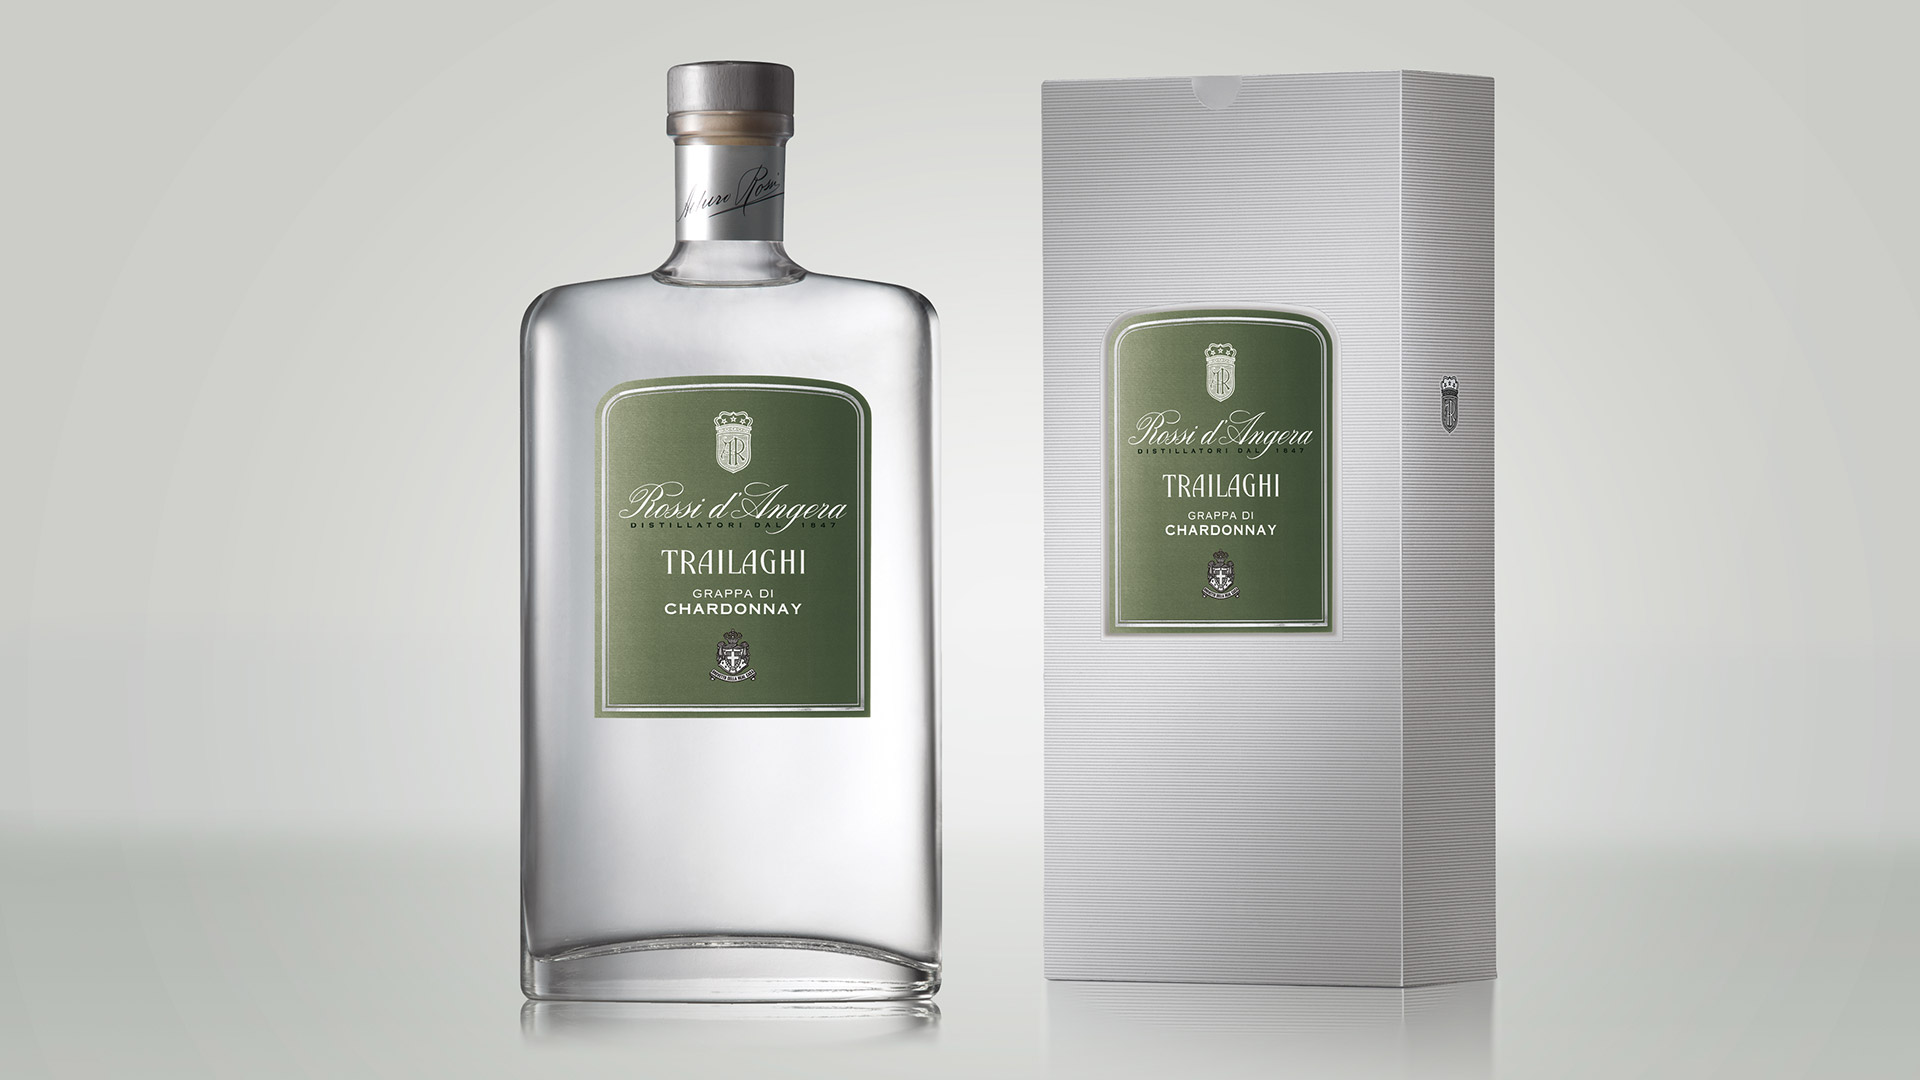 Rossi d'Angera Trailaghi bottle design